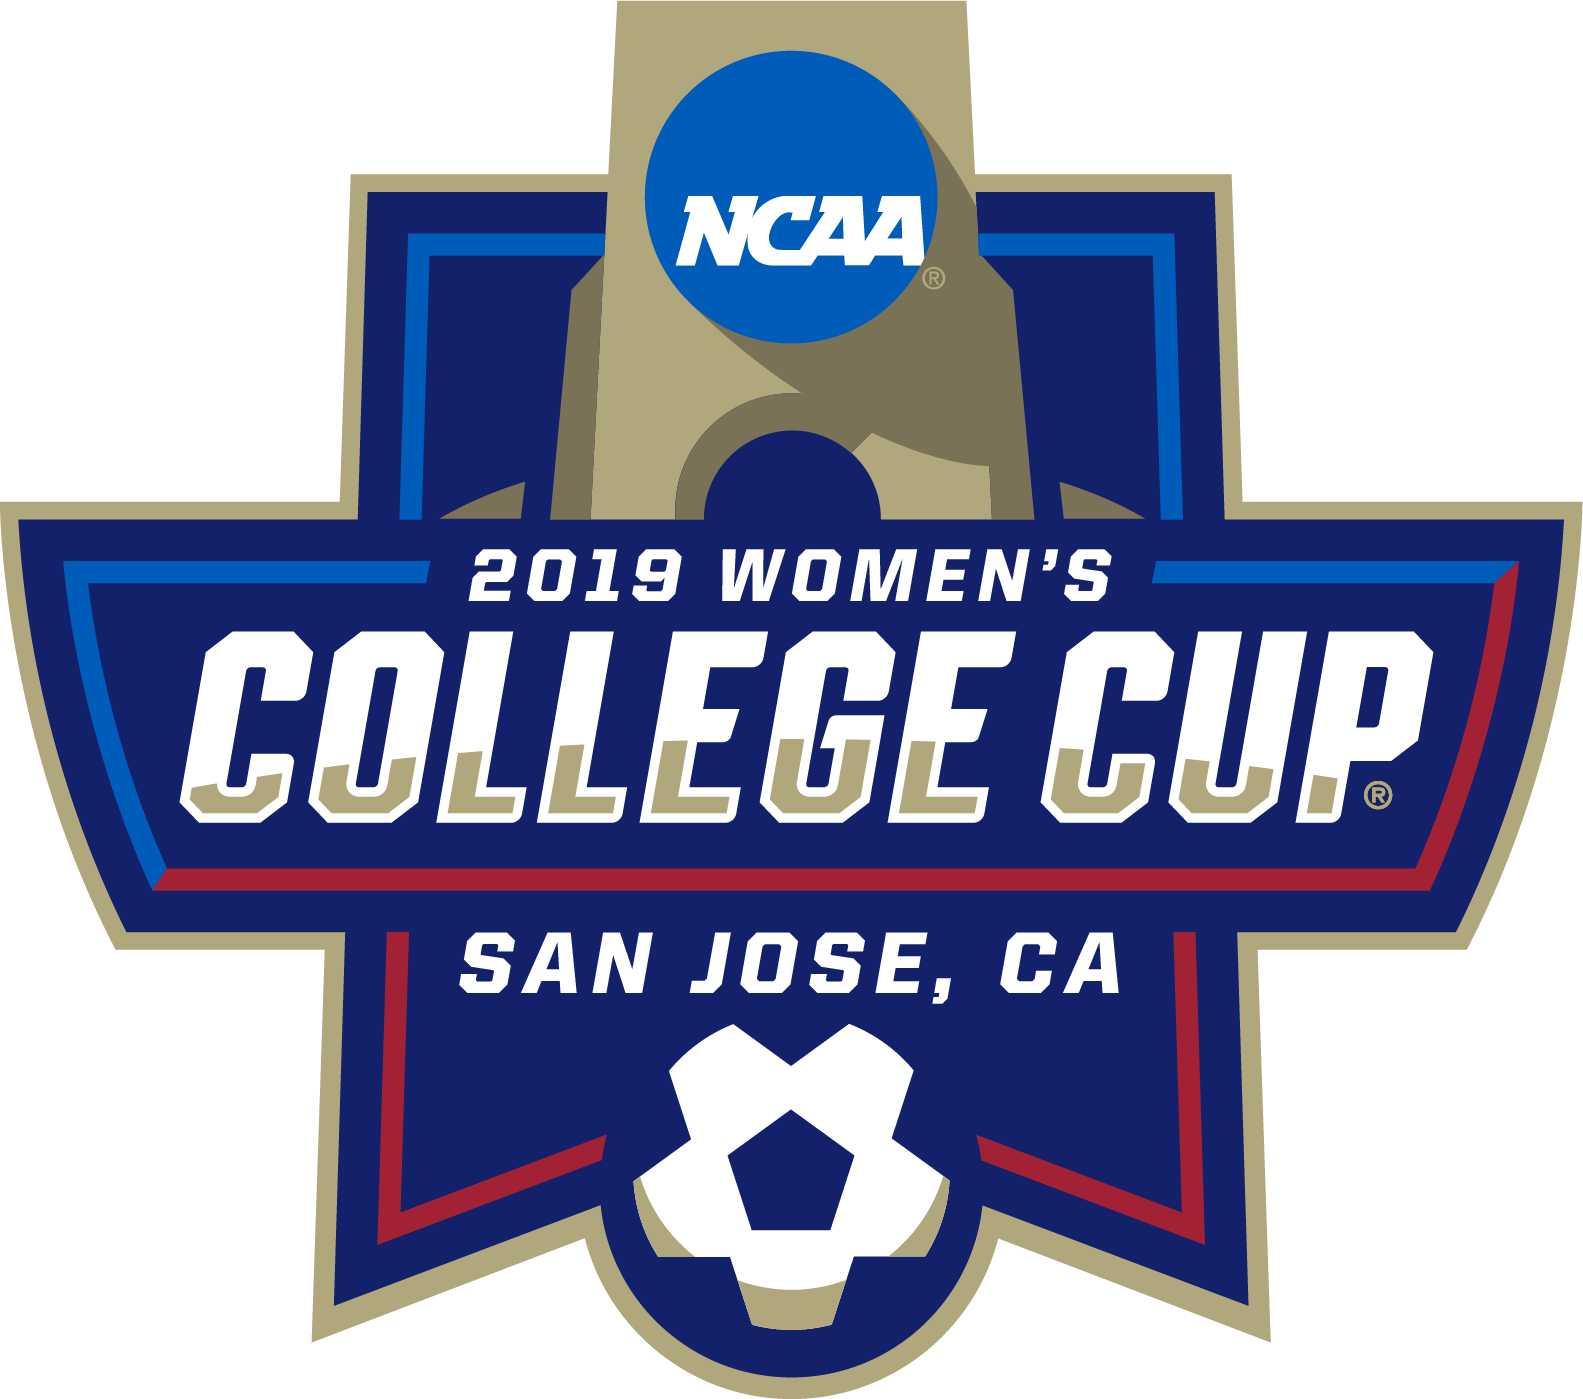 2019 WOMEN'S COLLEGE CUP